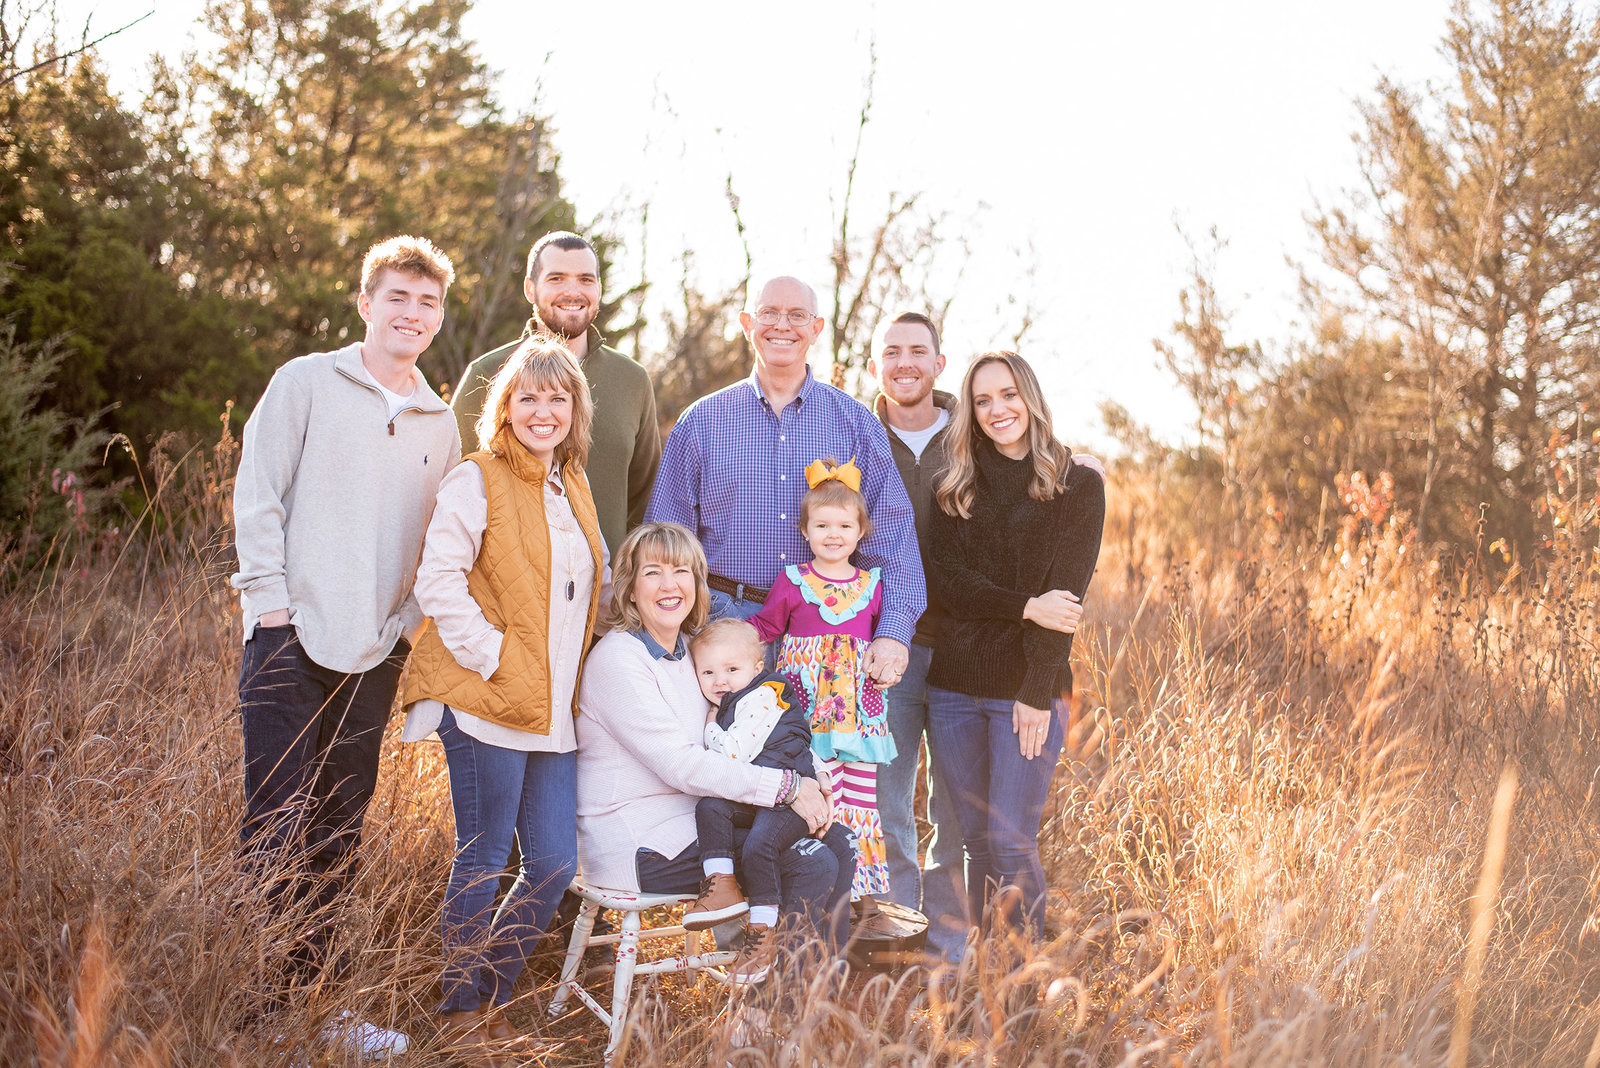 kuwitzky fam 18 WEBSITE